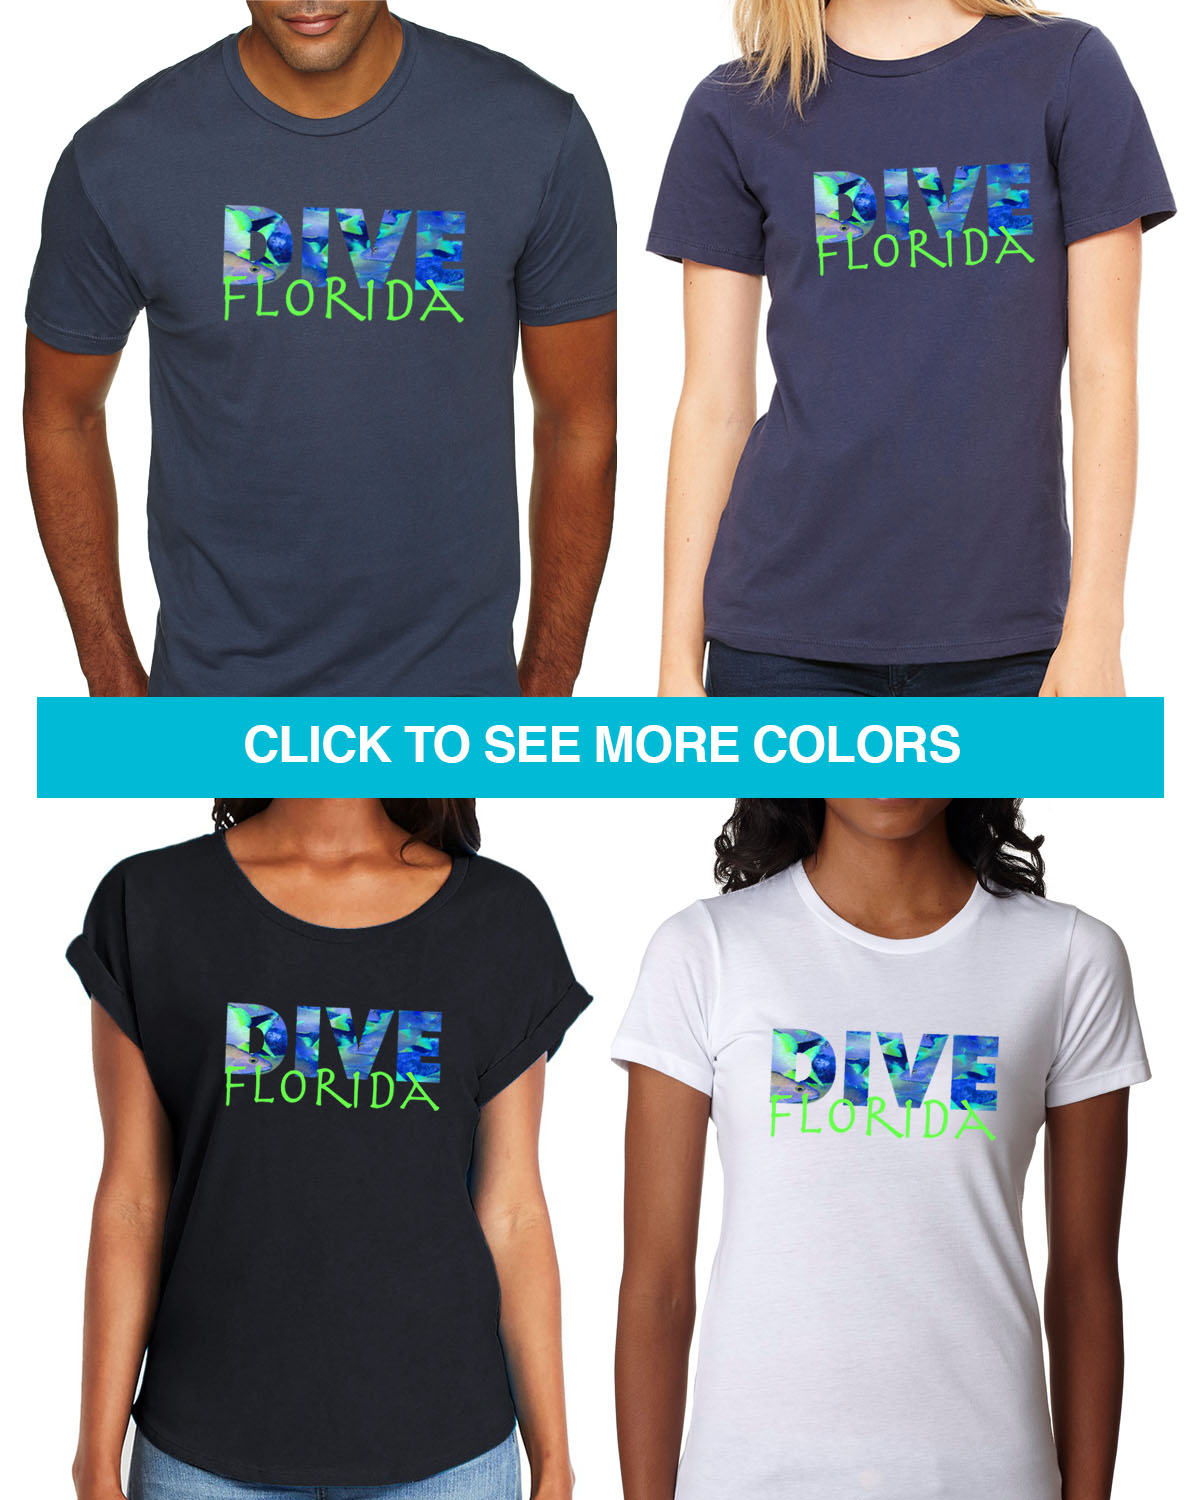 DIVE Florida Tees for Men & Women